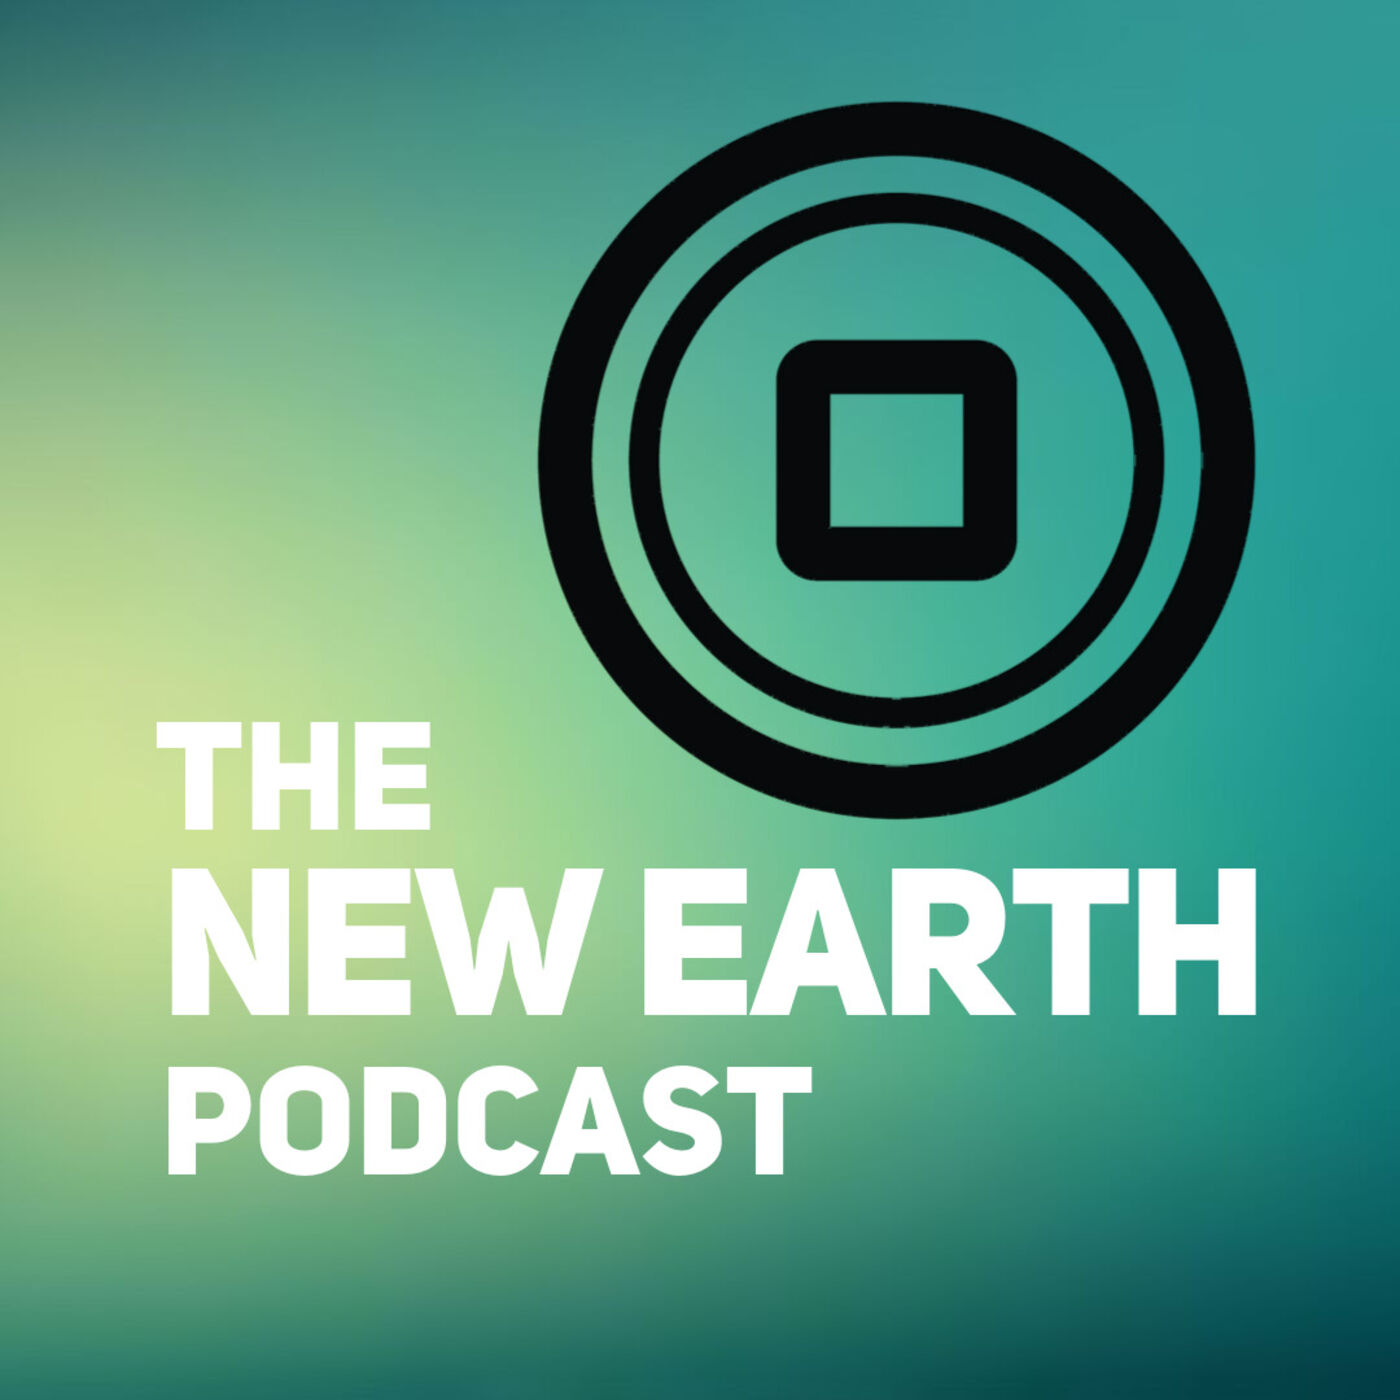 The New Earth Podcast